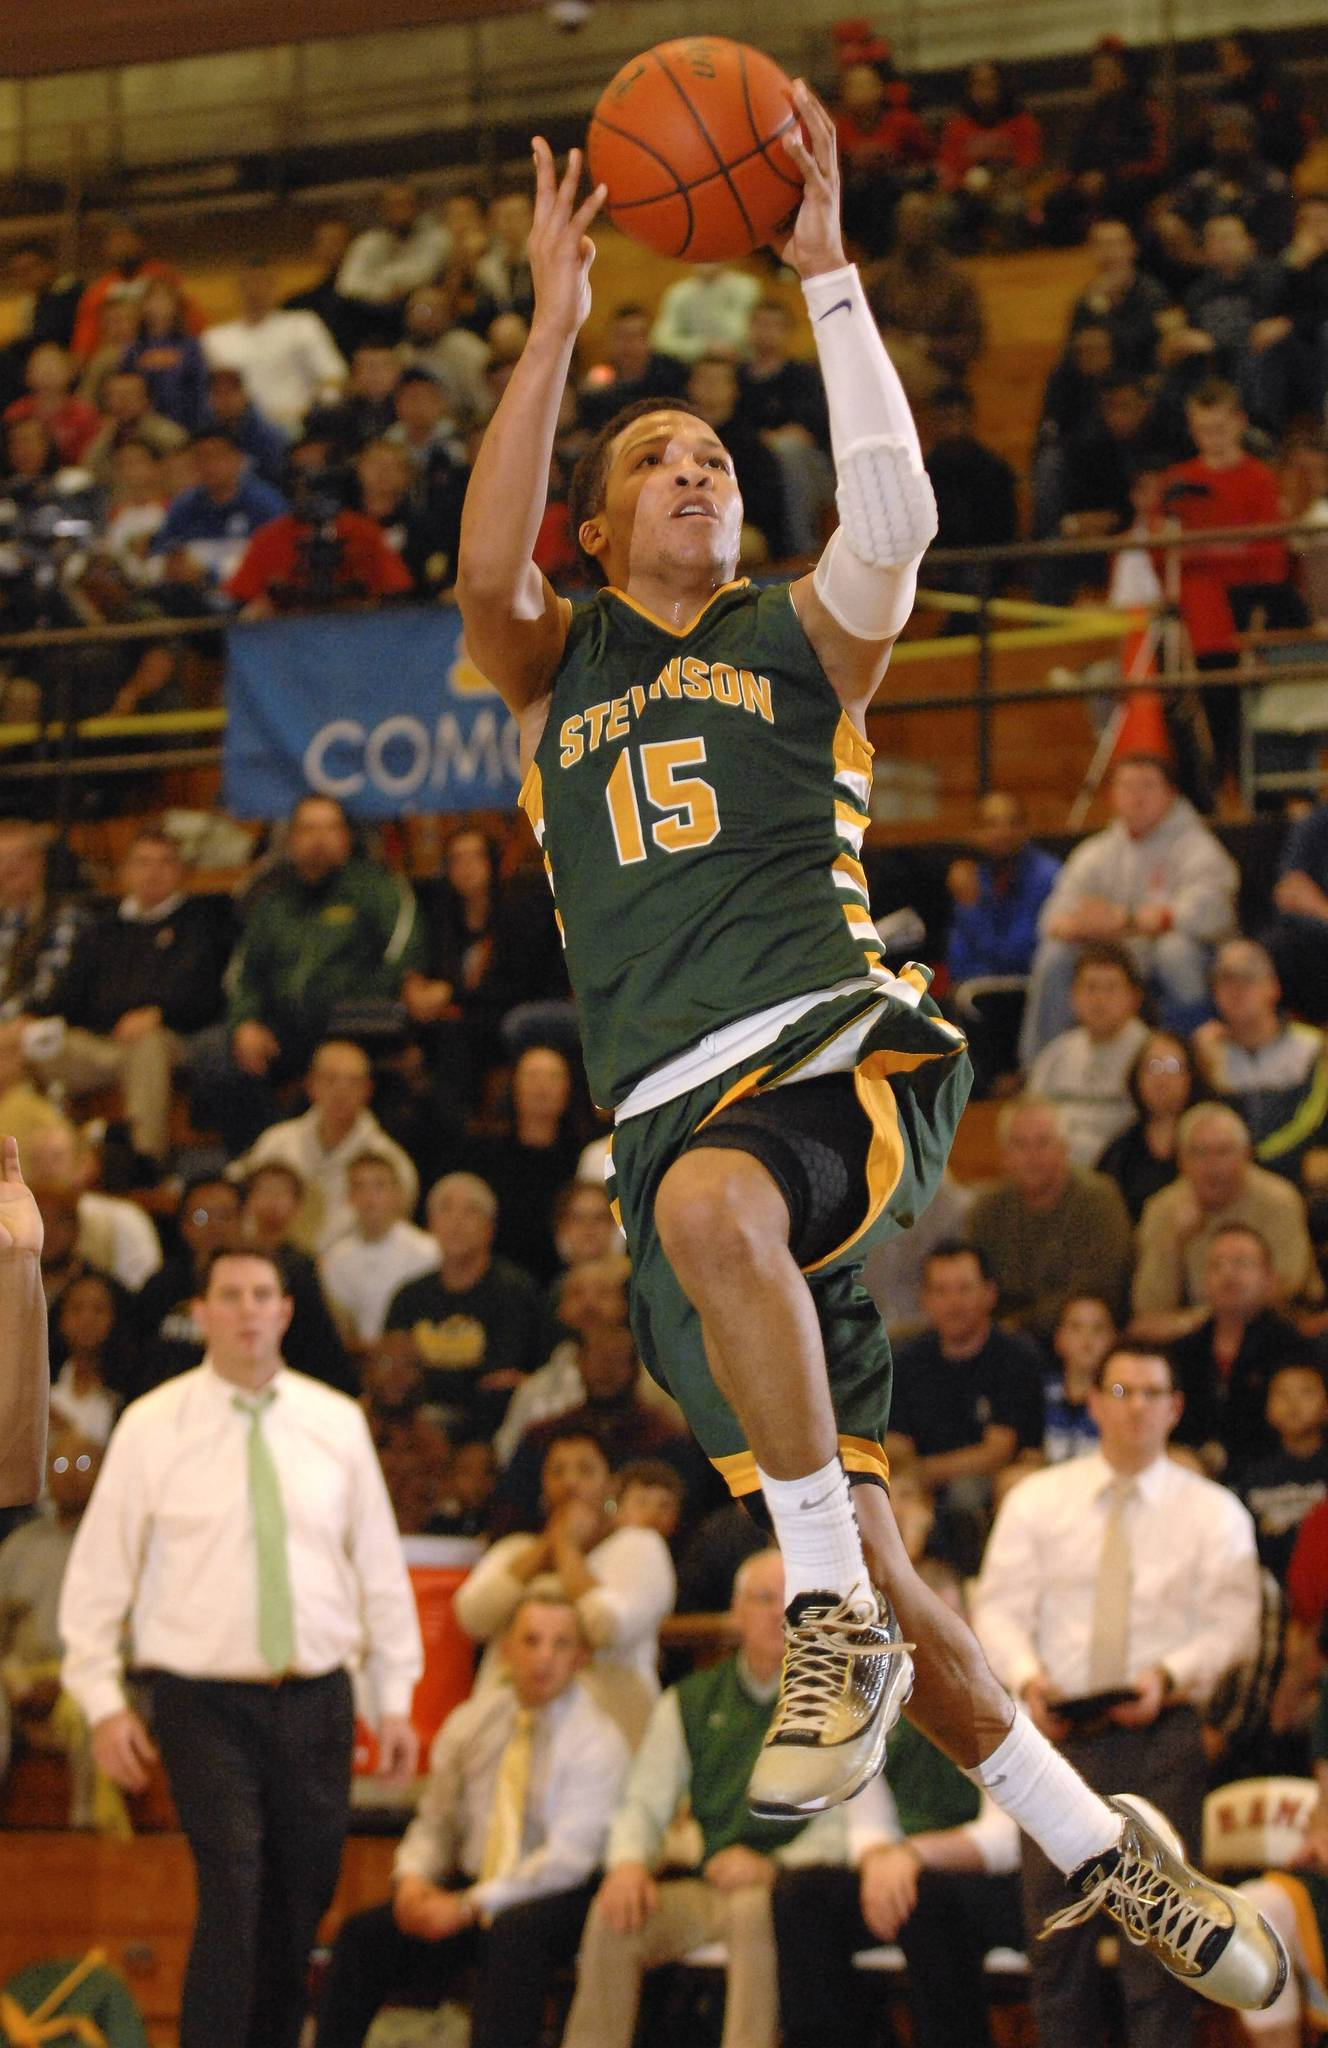 Stevenson's Jalen Brunson (32 points) goes up to score. Stevenson beat Marian Catholic 76-66 at Glenbard East's When Sides Collide 2014 Tournament on Saturday, January 25, 2014.